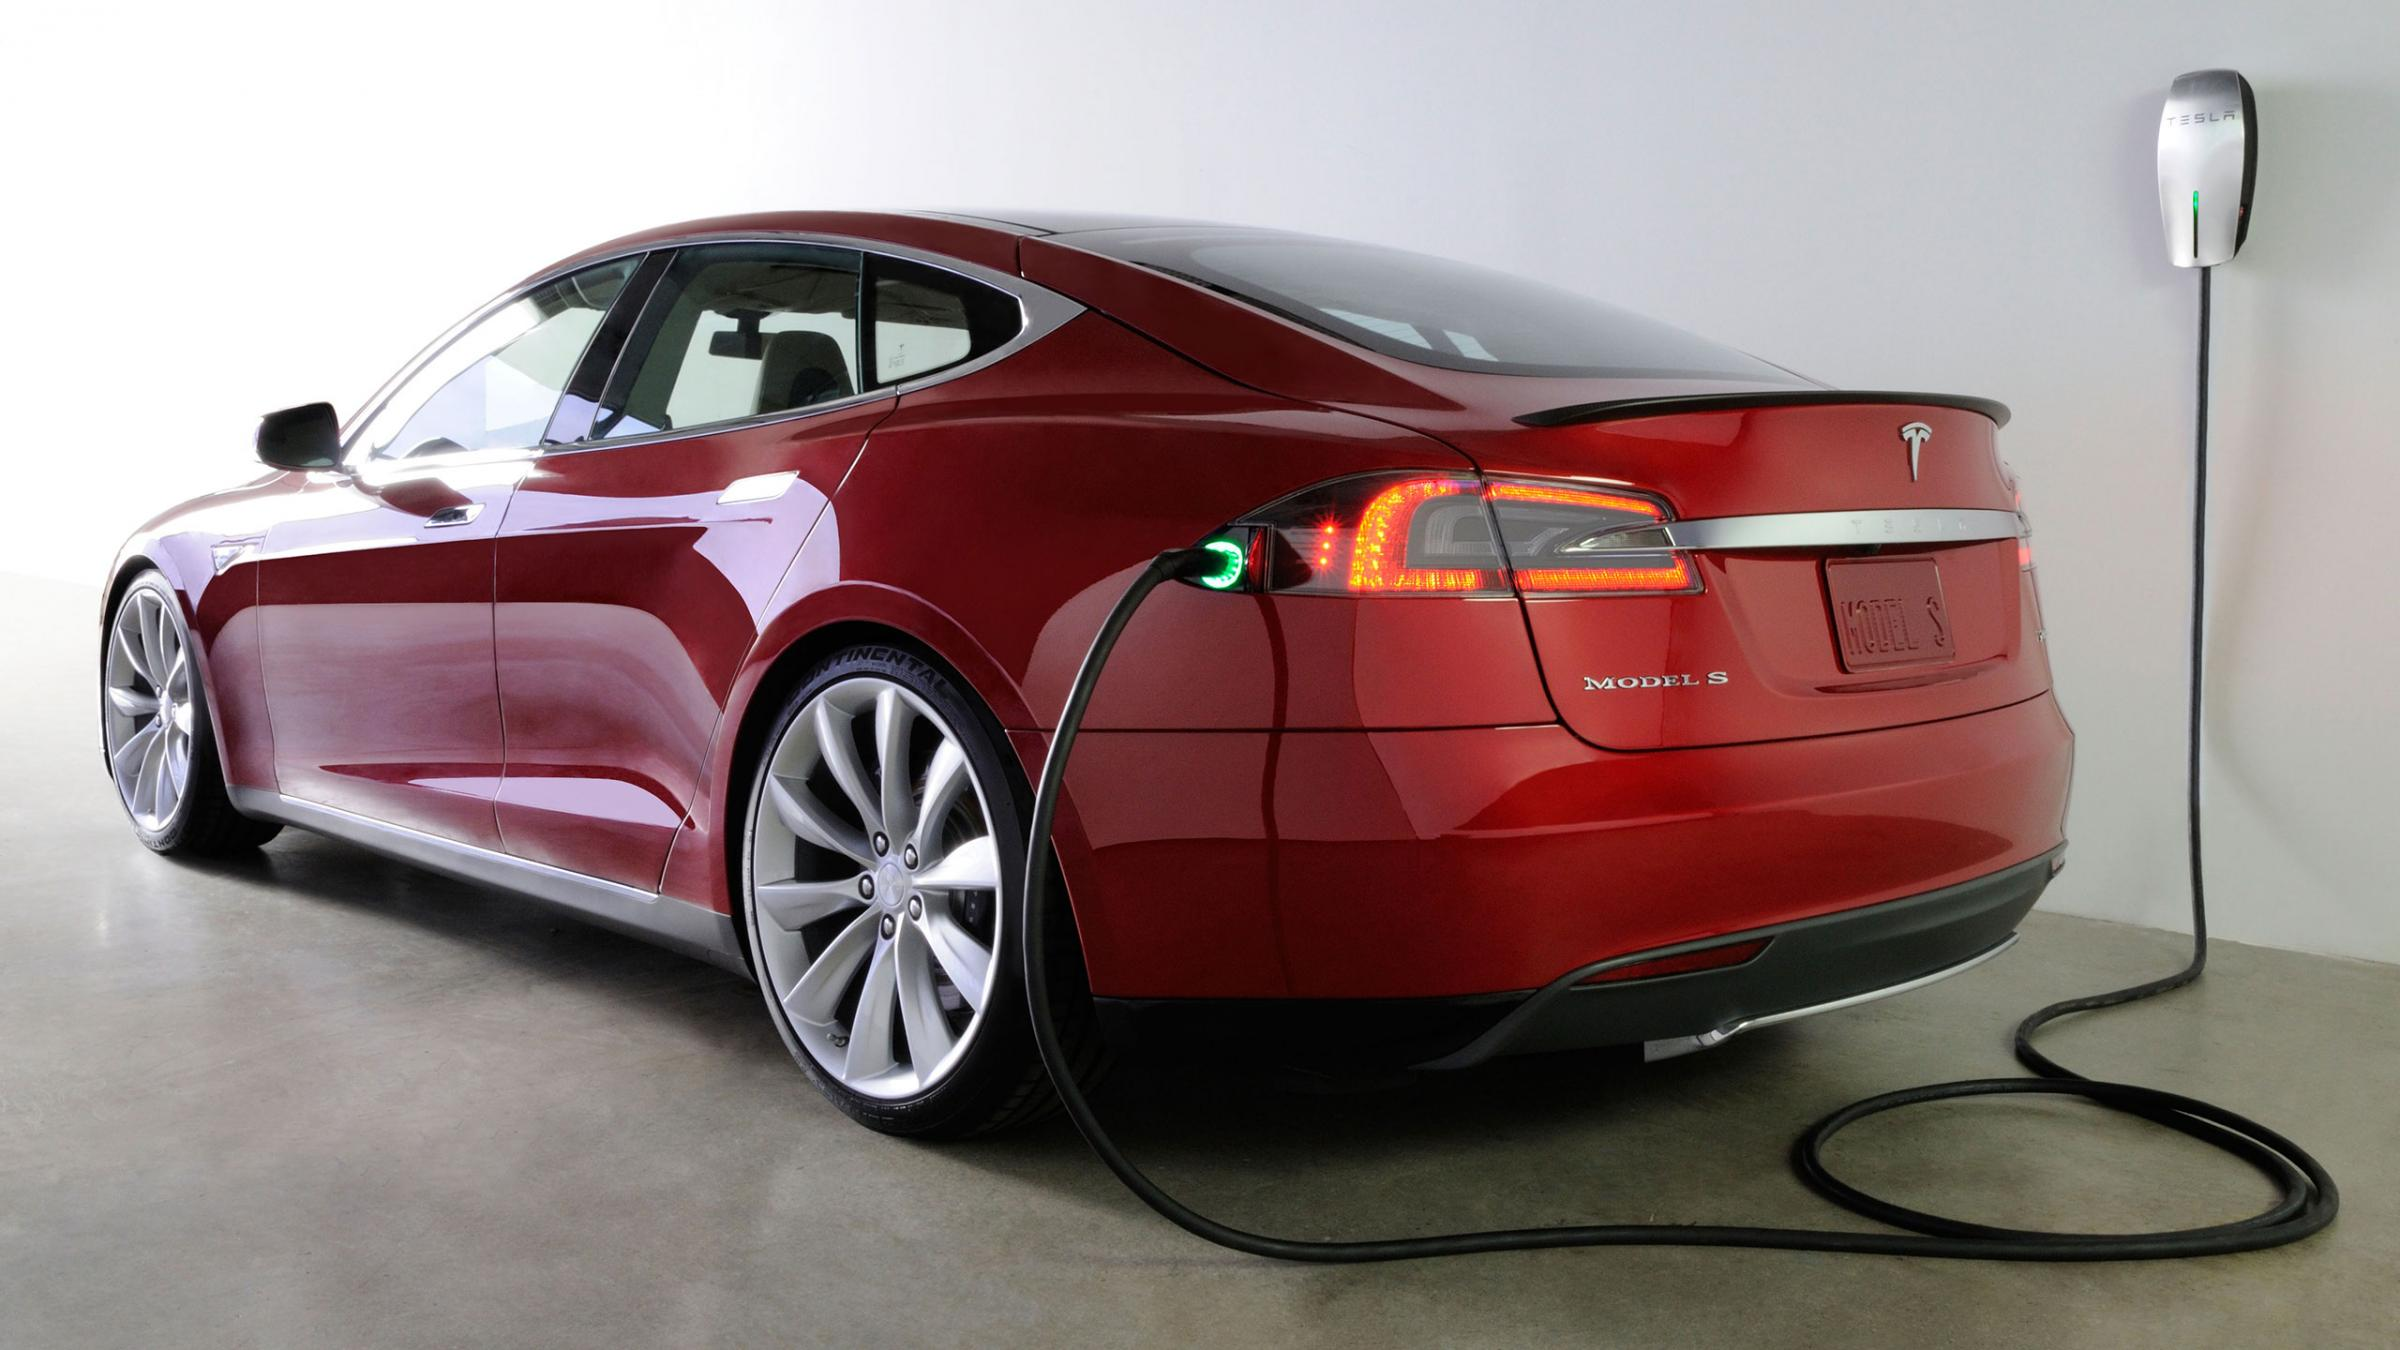 Model S - Tesla Motors - Tanken